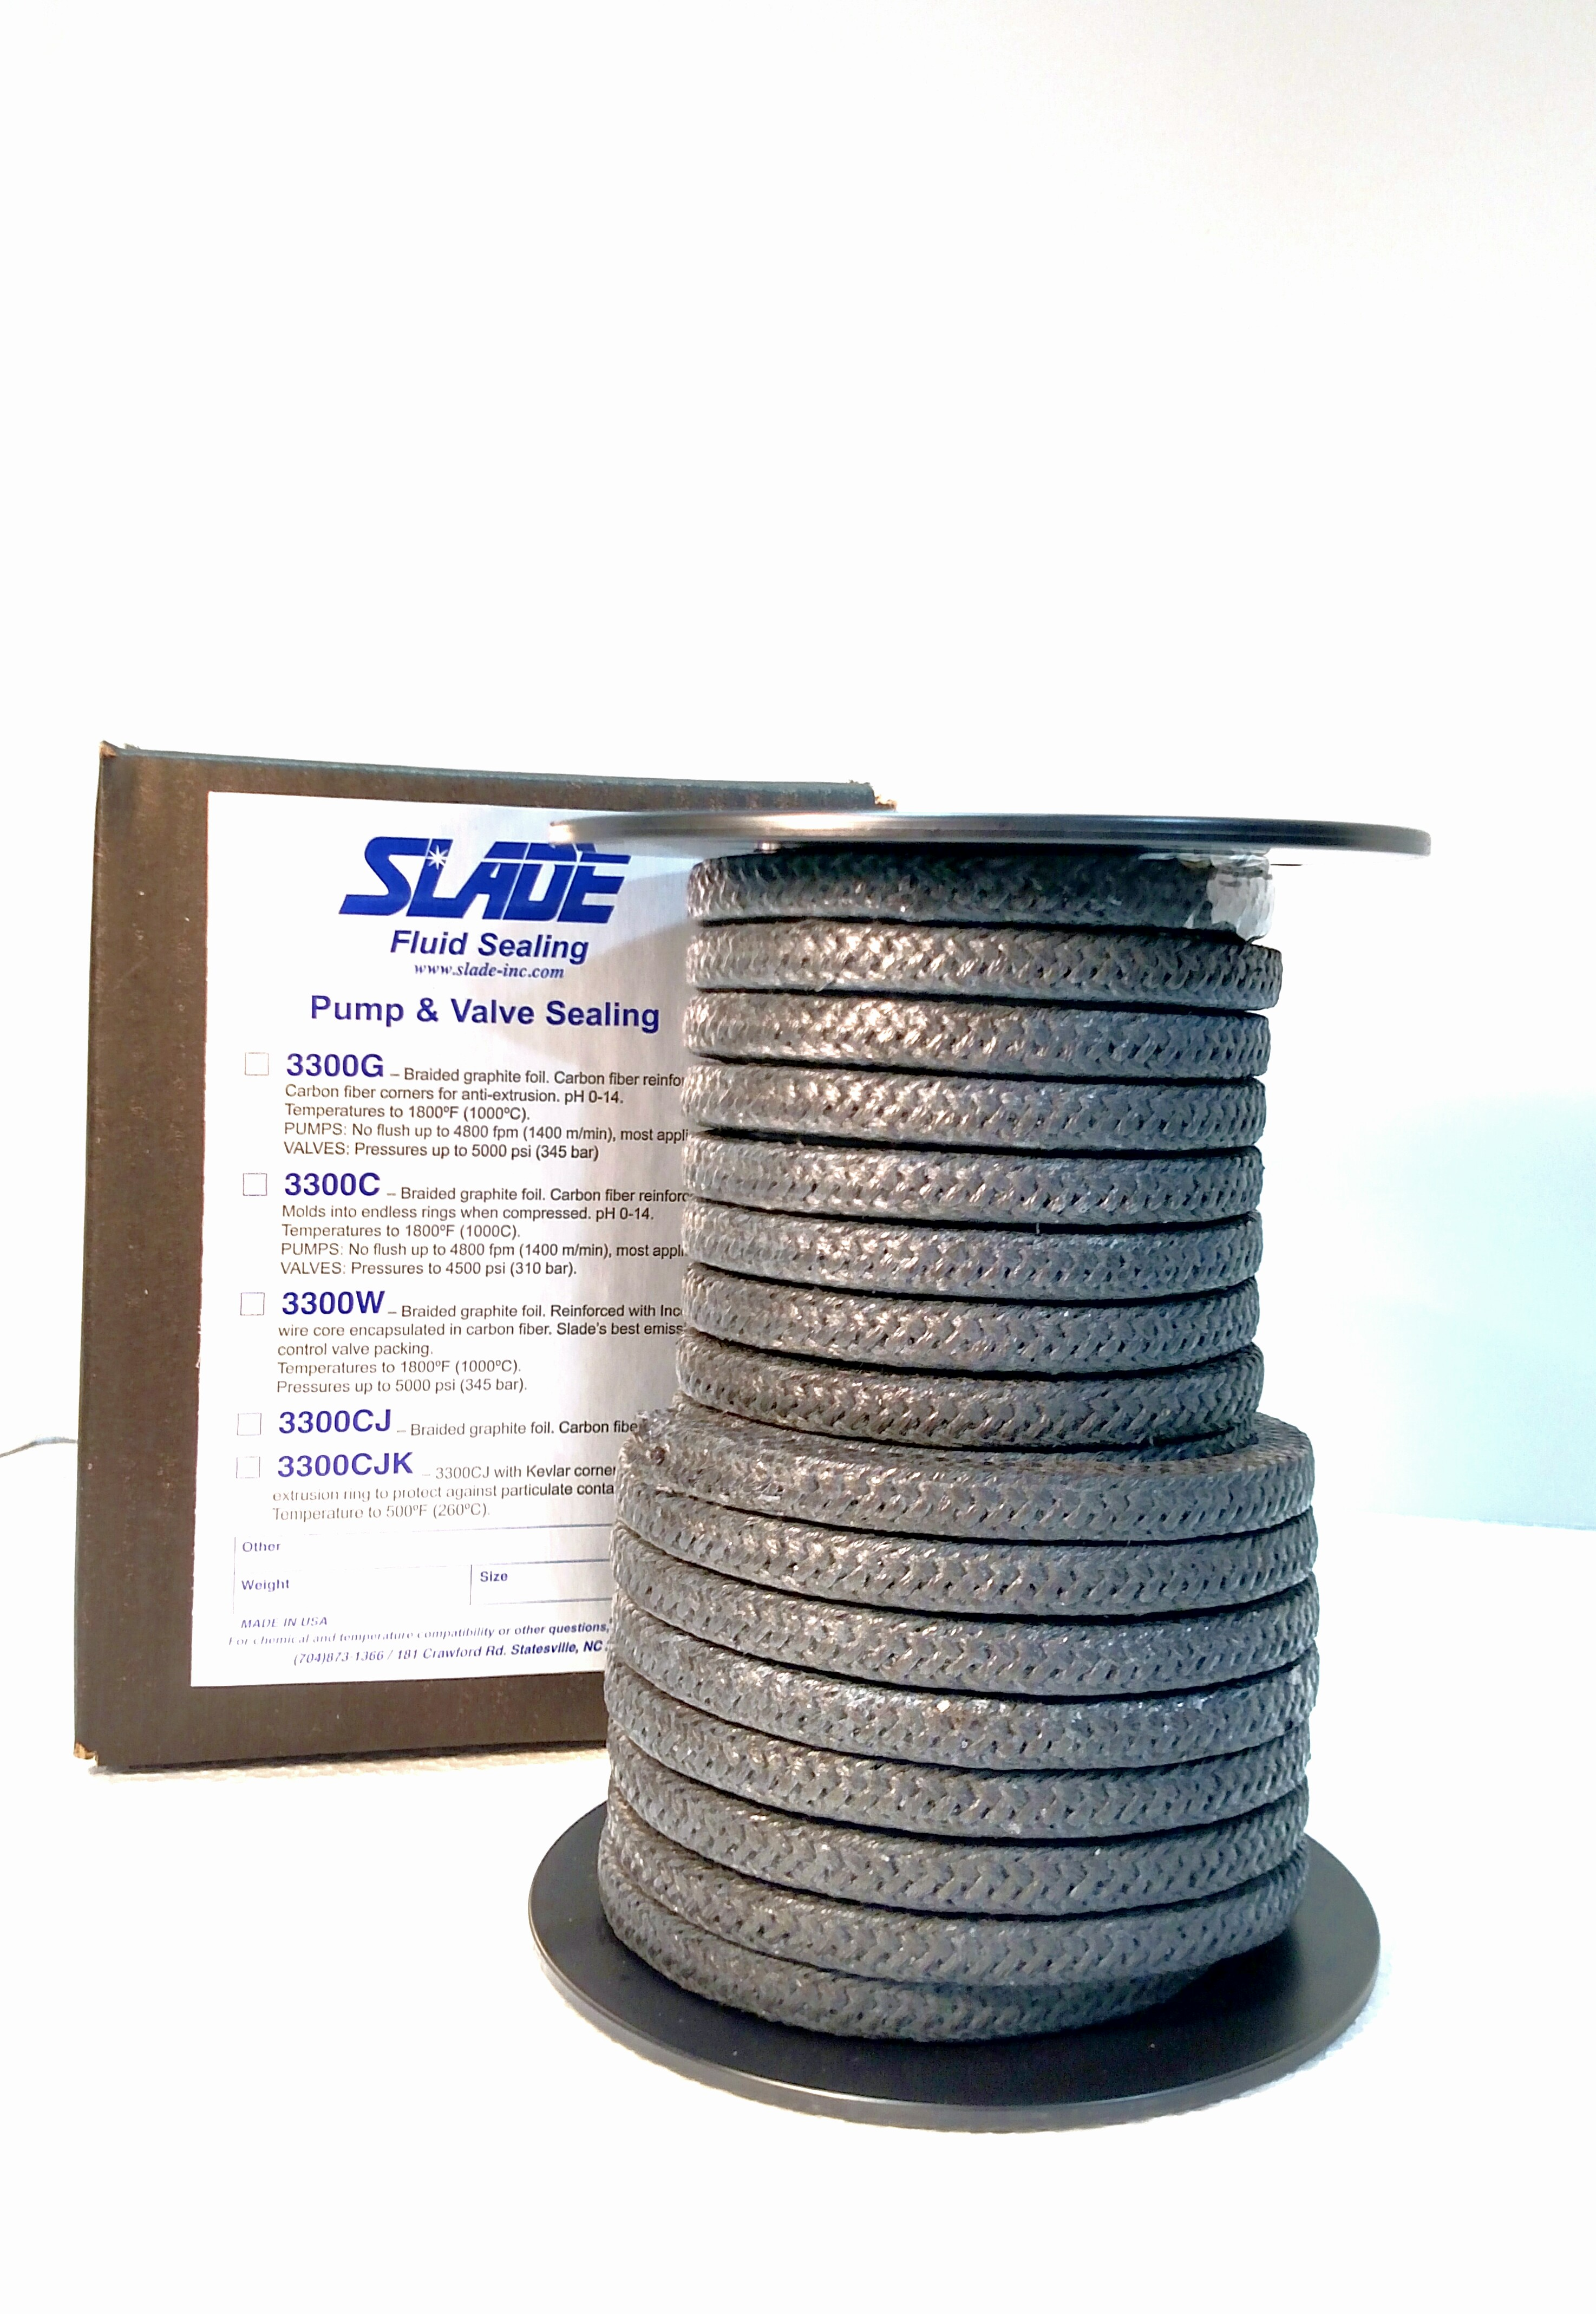 Slade, Inc. - Manufacturer of Sealing Products